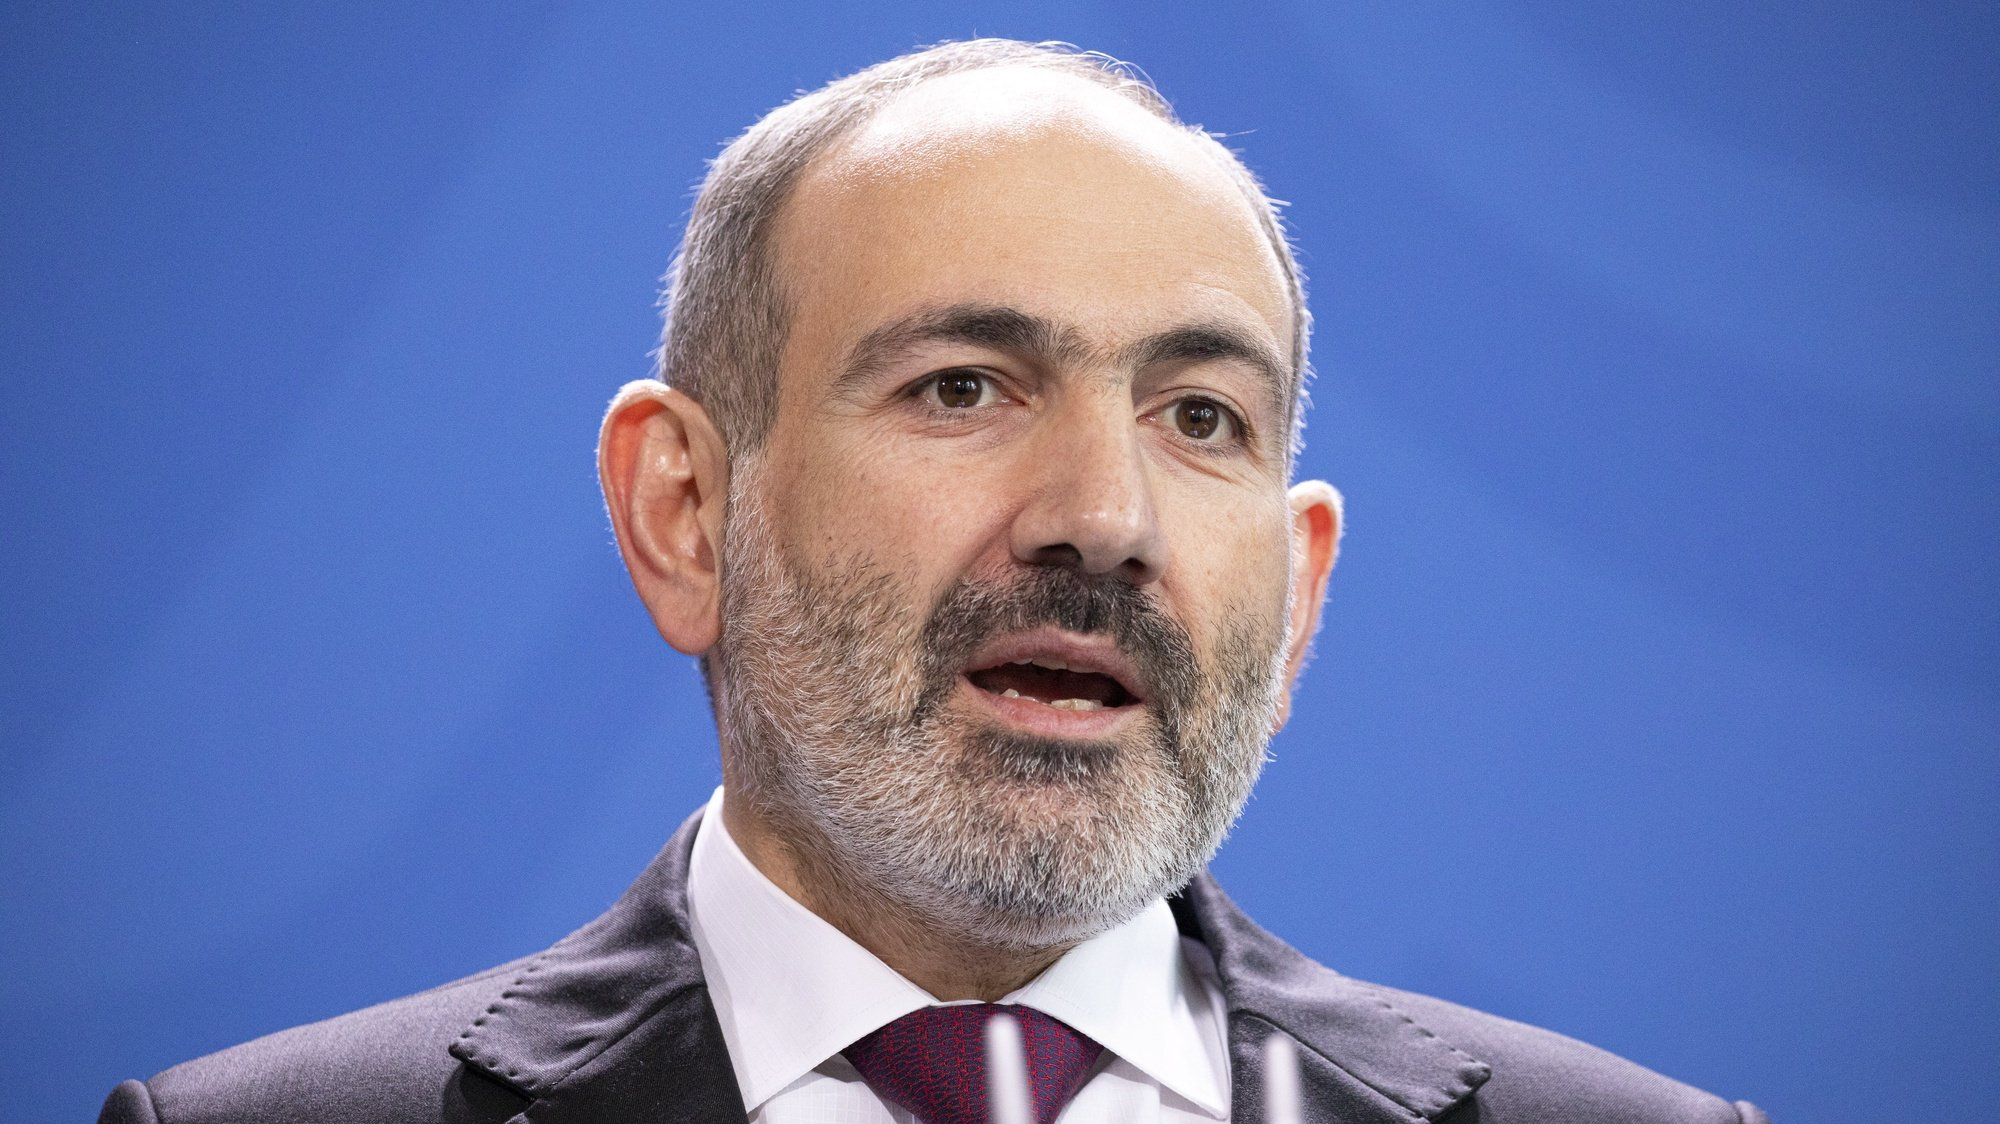 epa09103232 (FILE) - Prime Minister of Armenia Nikol Pashinyan delivers a statement prior to a meeting with German Chancellor Merkel (not pictured) at the Chancellery in Berlin, Germany, 13 February 2020 (Reissued 28 March 2021). Armenian Prime Minister Pashinyan announced on 28 March during a visit to the Armavir region, that he would resign from his position in April ahead of early parliamentary elections.  EPA/OMER MESSINGER *** Local Caption *** 55871945